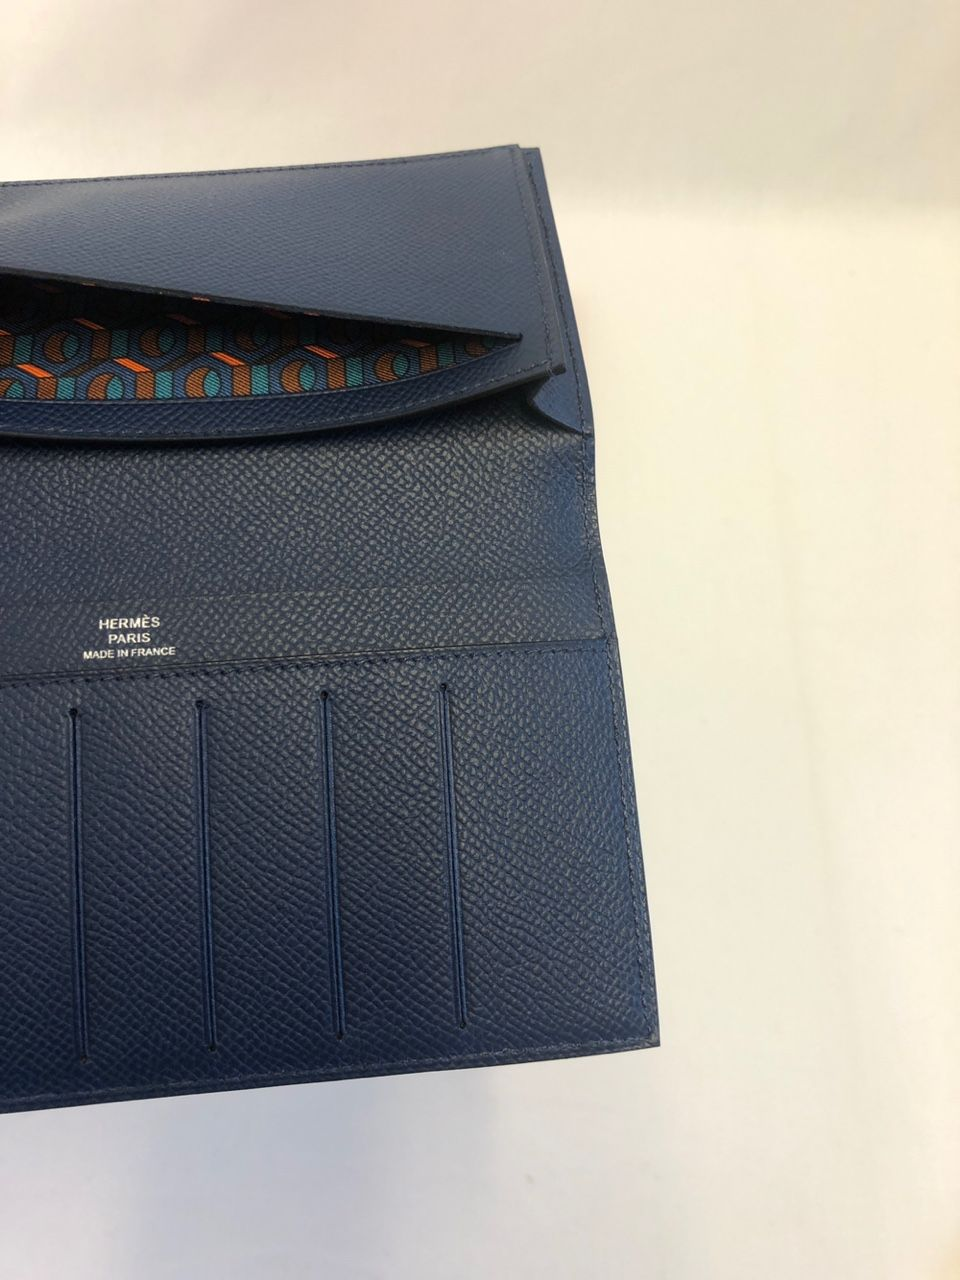 Hermes Brieftasche Citizen Twill Long bleu de Malte/deep blue/vert Bosphore H074607CAAC